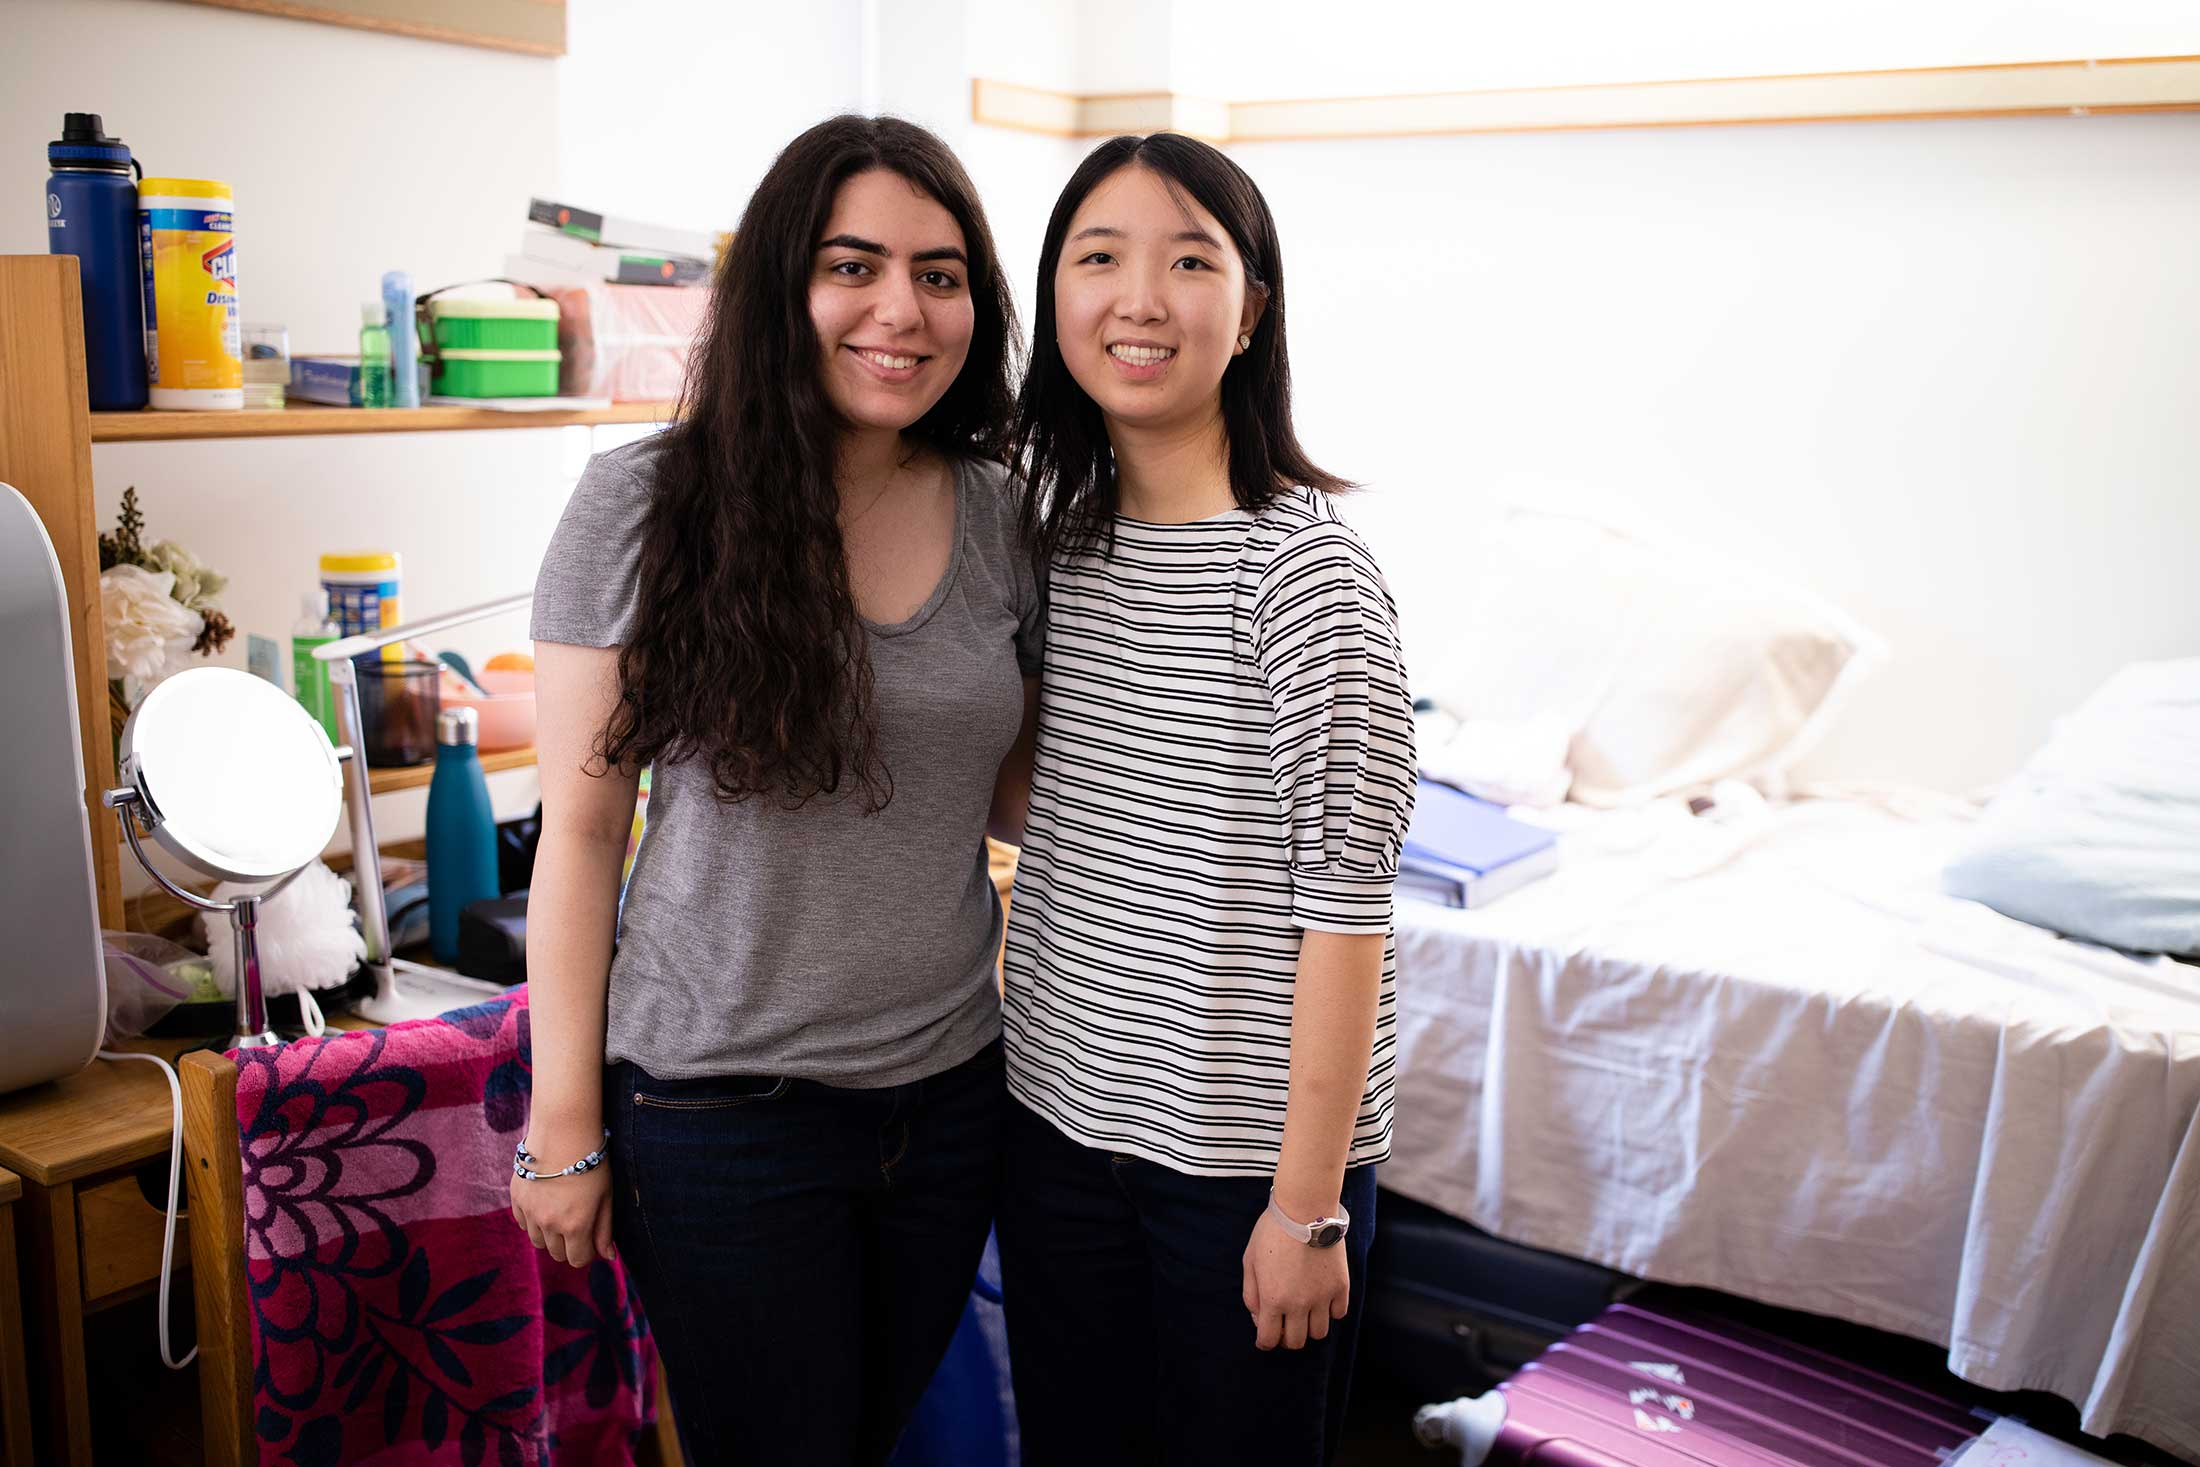 Two new roommates pose for a photo in their shared room